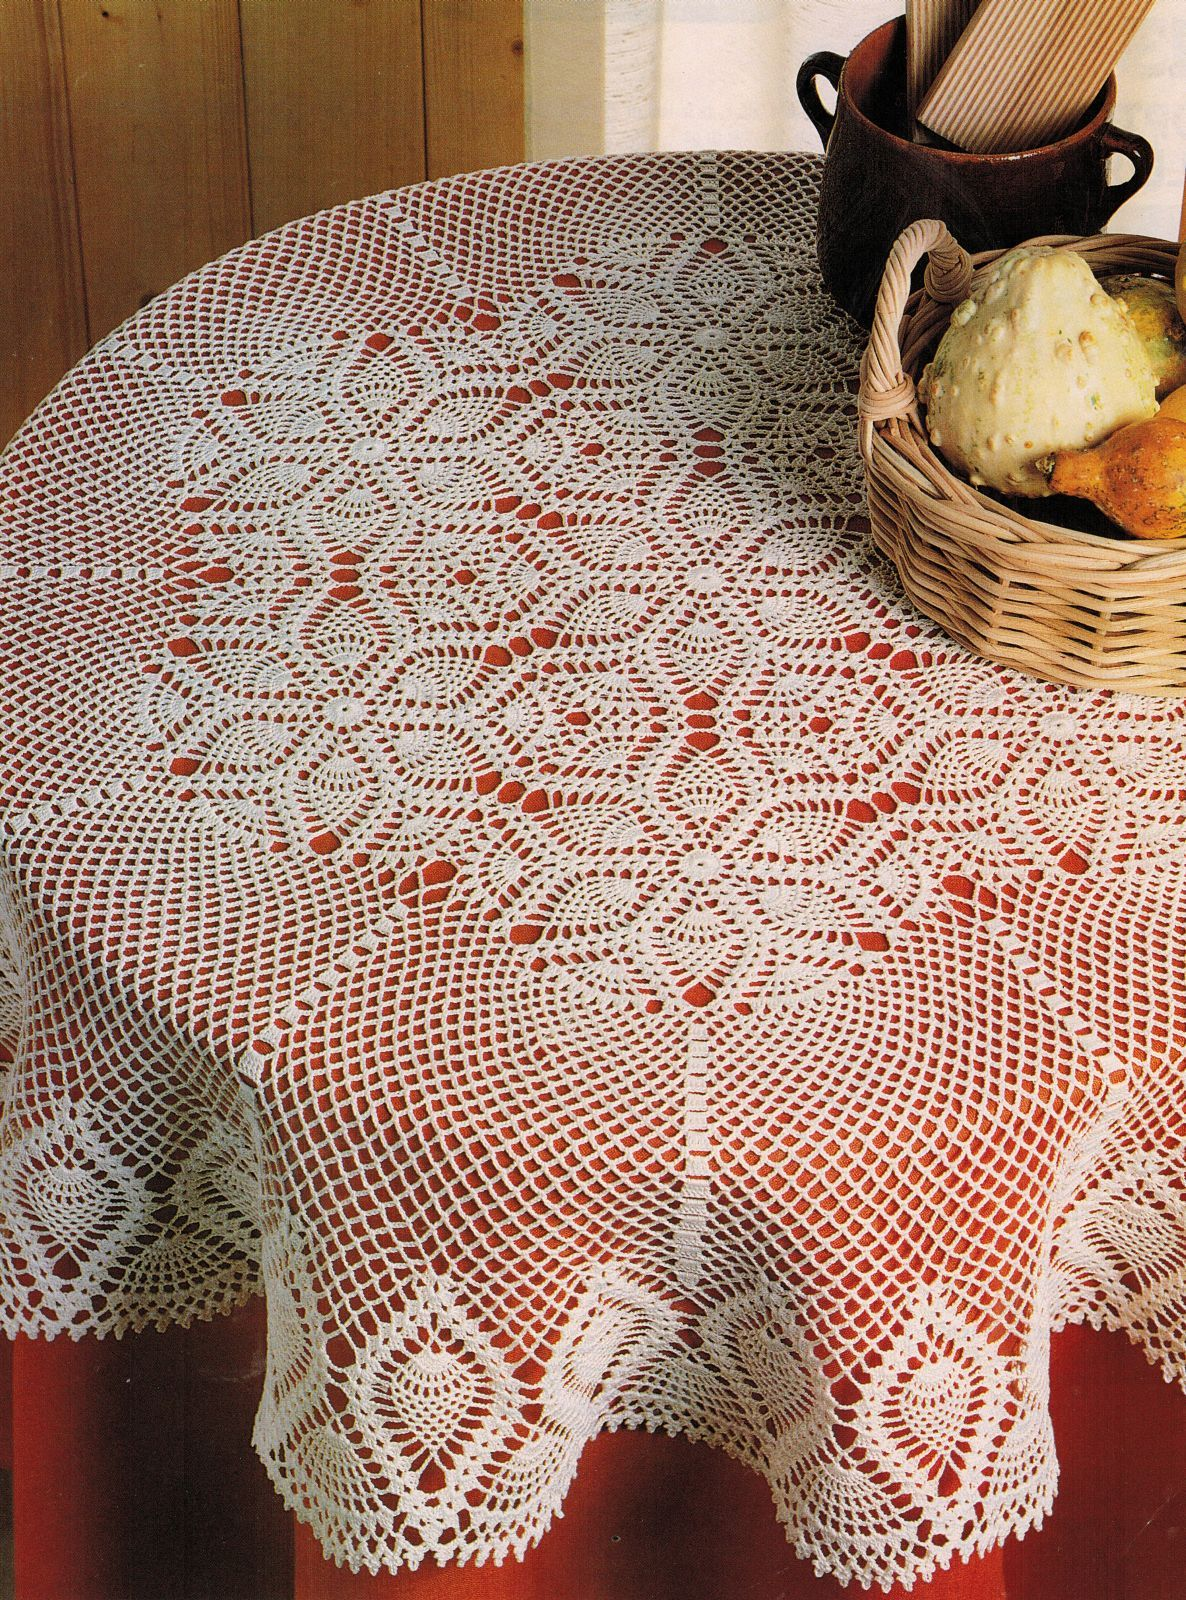 Quadrille Wall Hanging Rug Pillows Optical Illusion Table Topper Crochet Pattern image 4